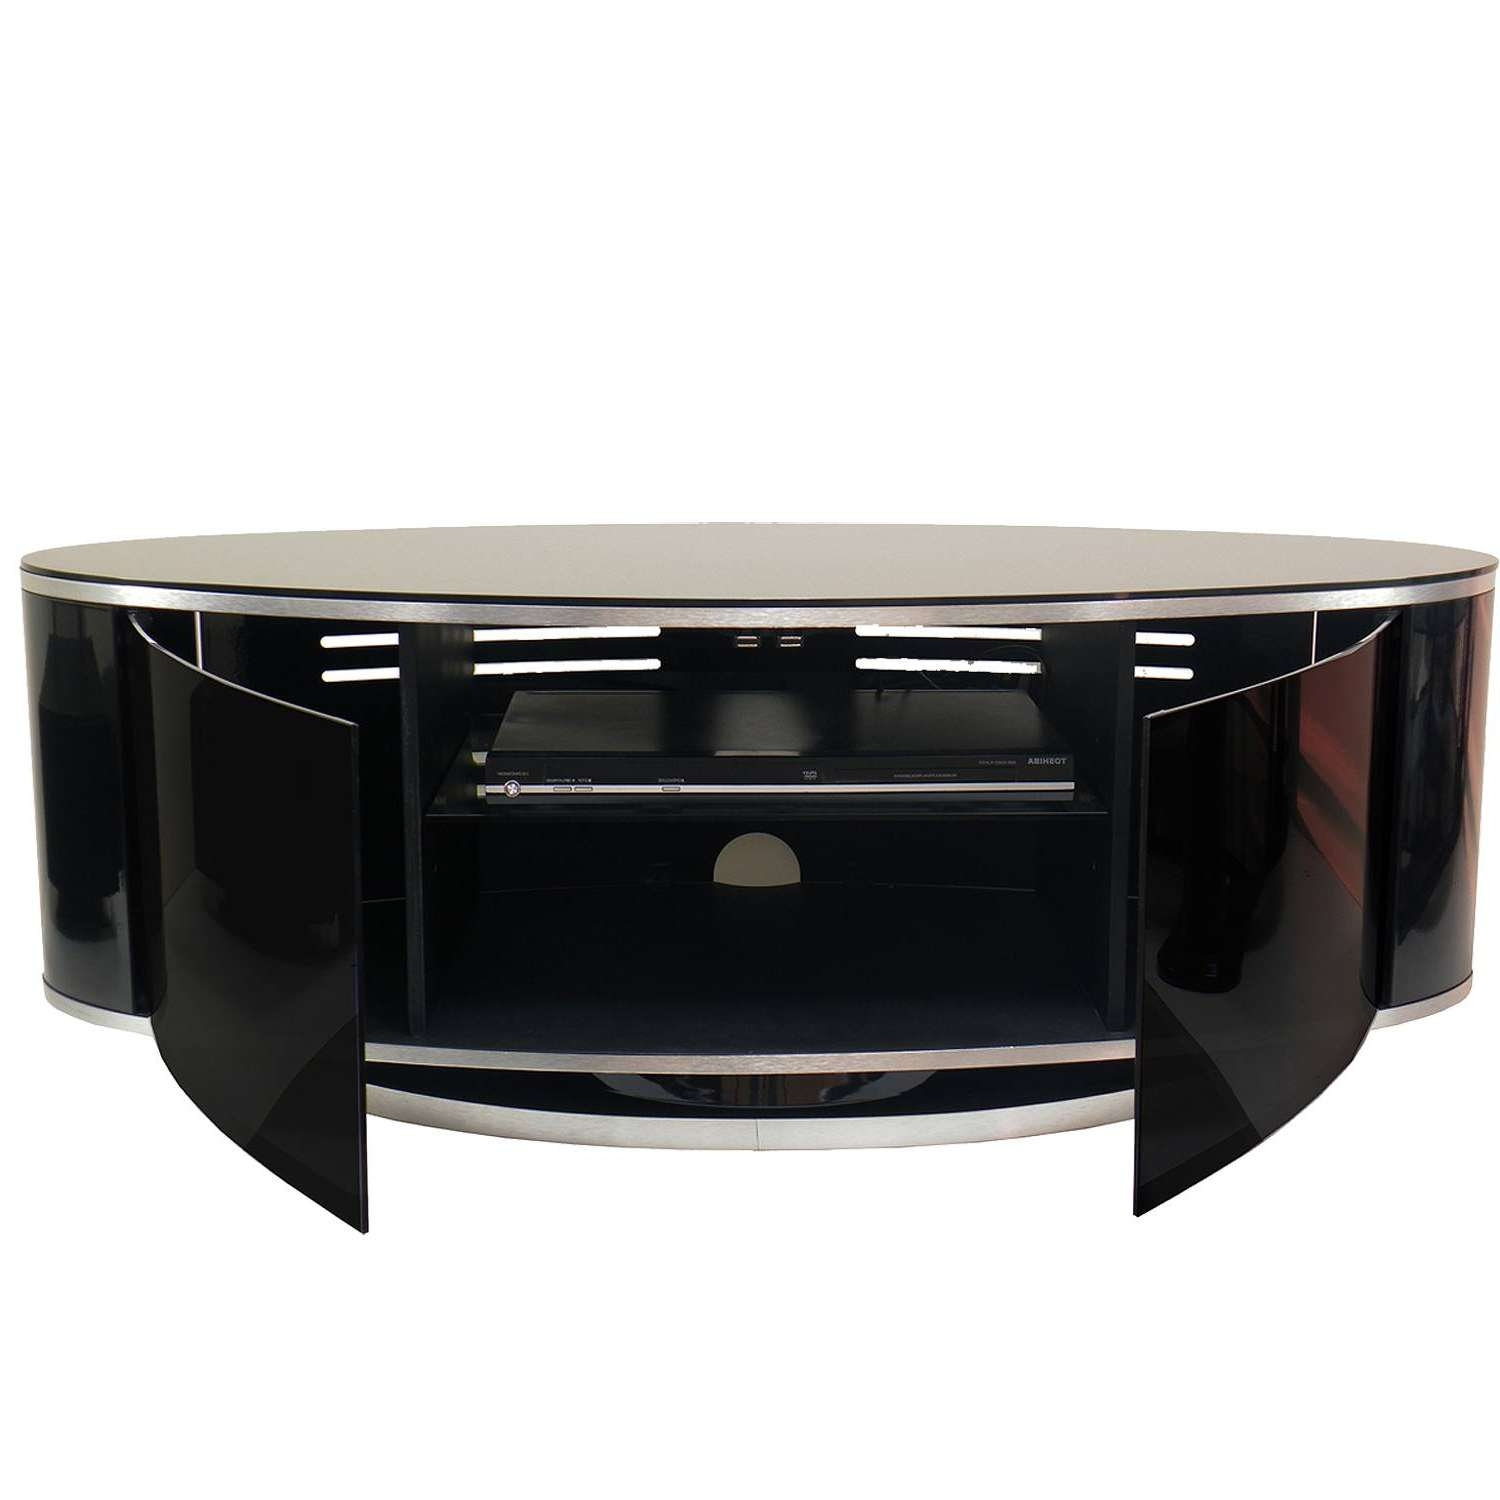 "Mda Designs Luna Av High Gloss Black Oval Tv Cabinet Up To 55"" Tvs Within Black Oval Tv Stands (View 8 of 15)"